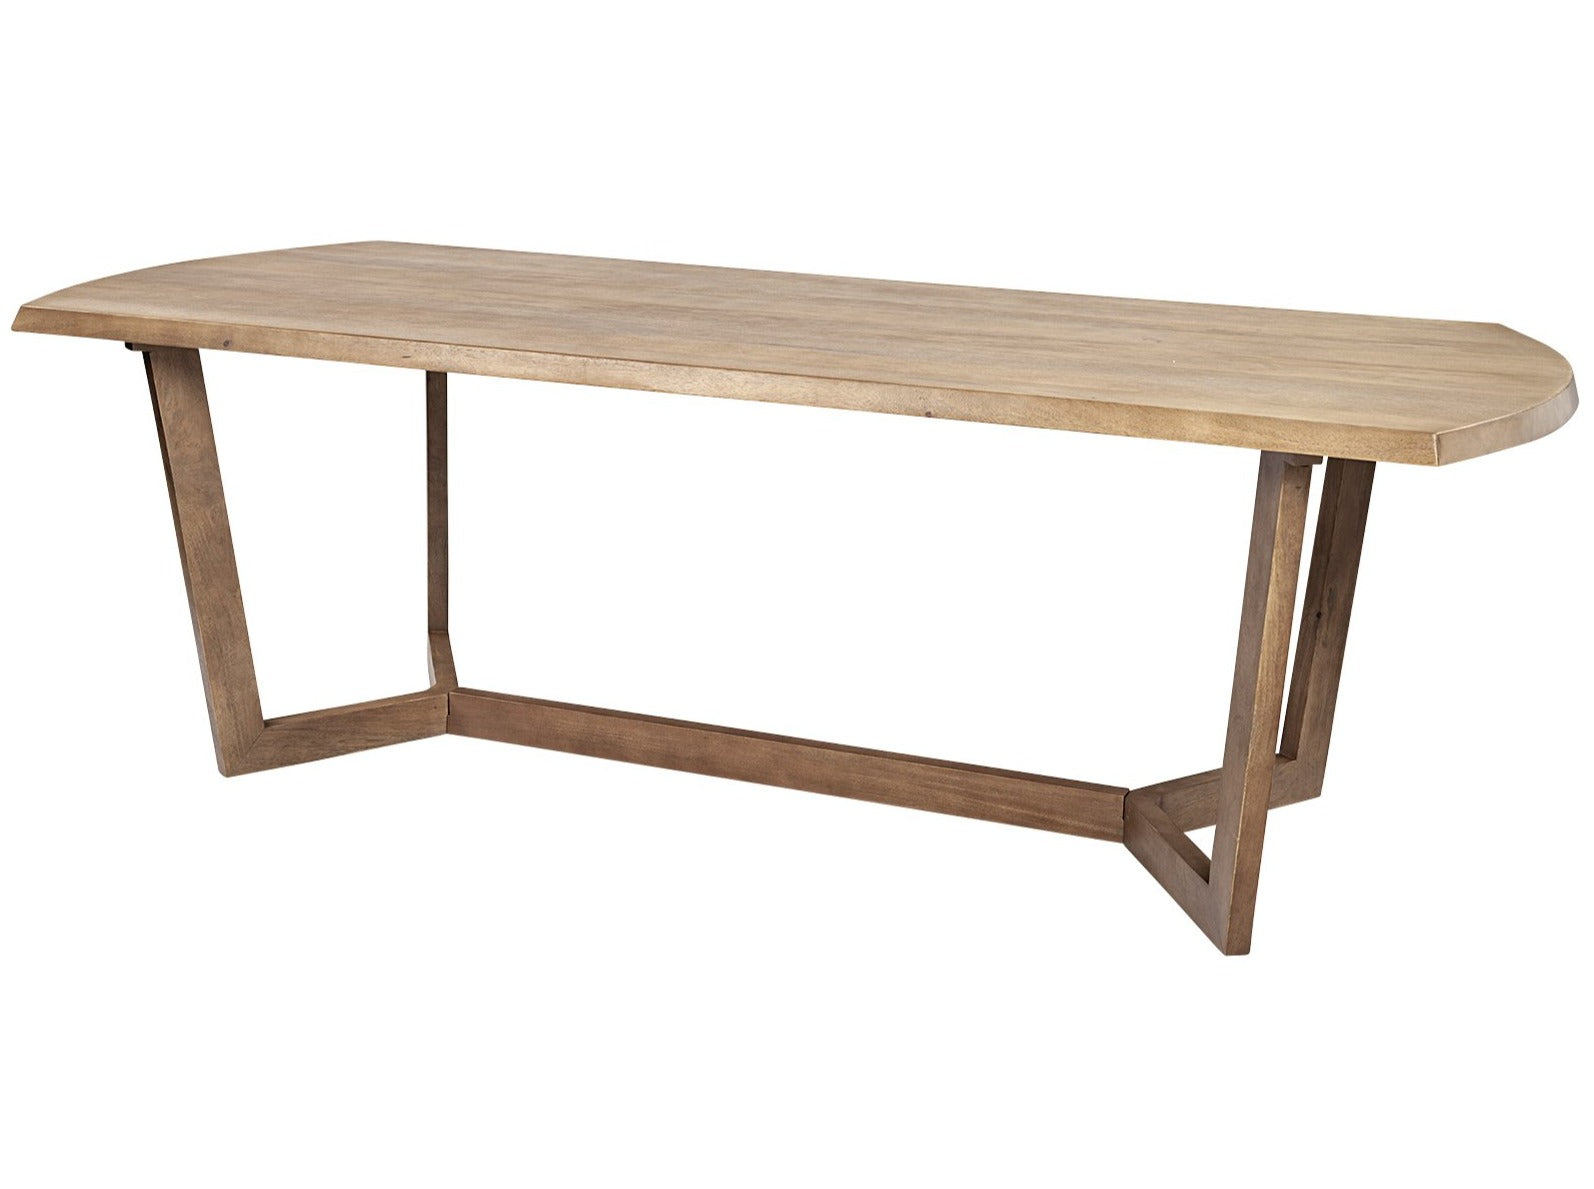 Denver Rectangular Brown Solid Wood Top Dining Table | Calgary's Furniture Store